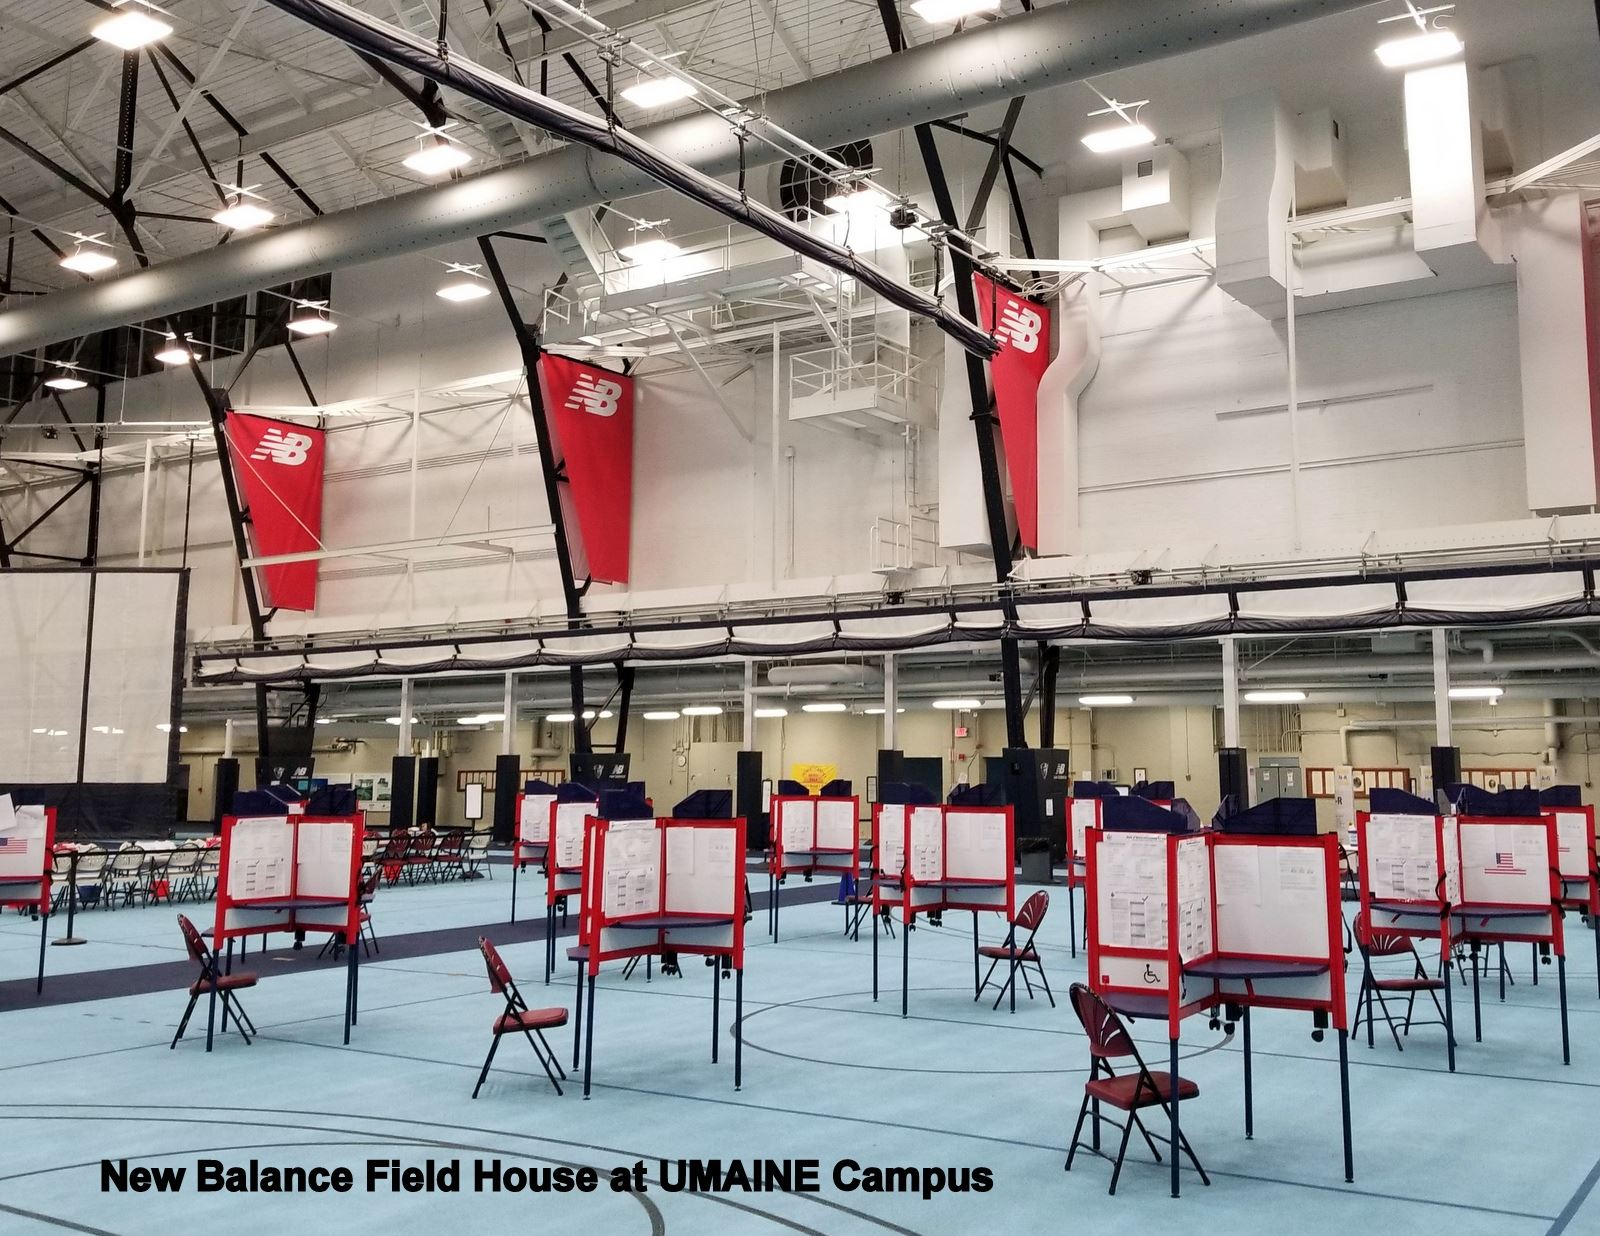 Voting booths at the New Balance Field House on UMaine Campus